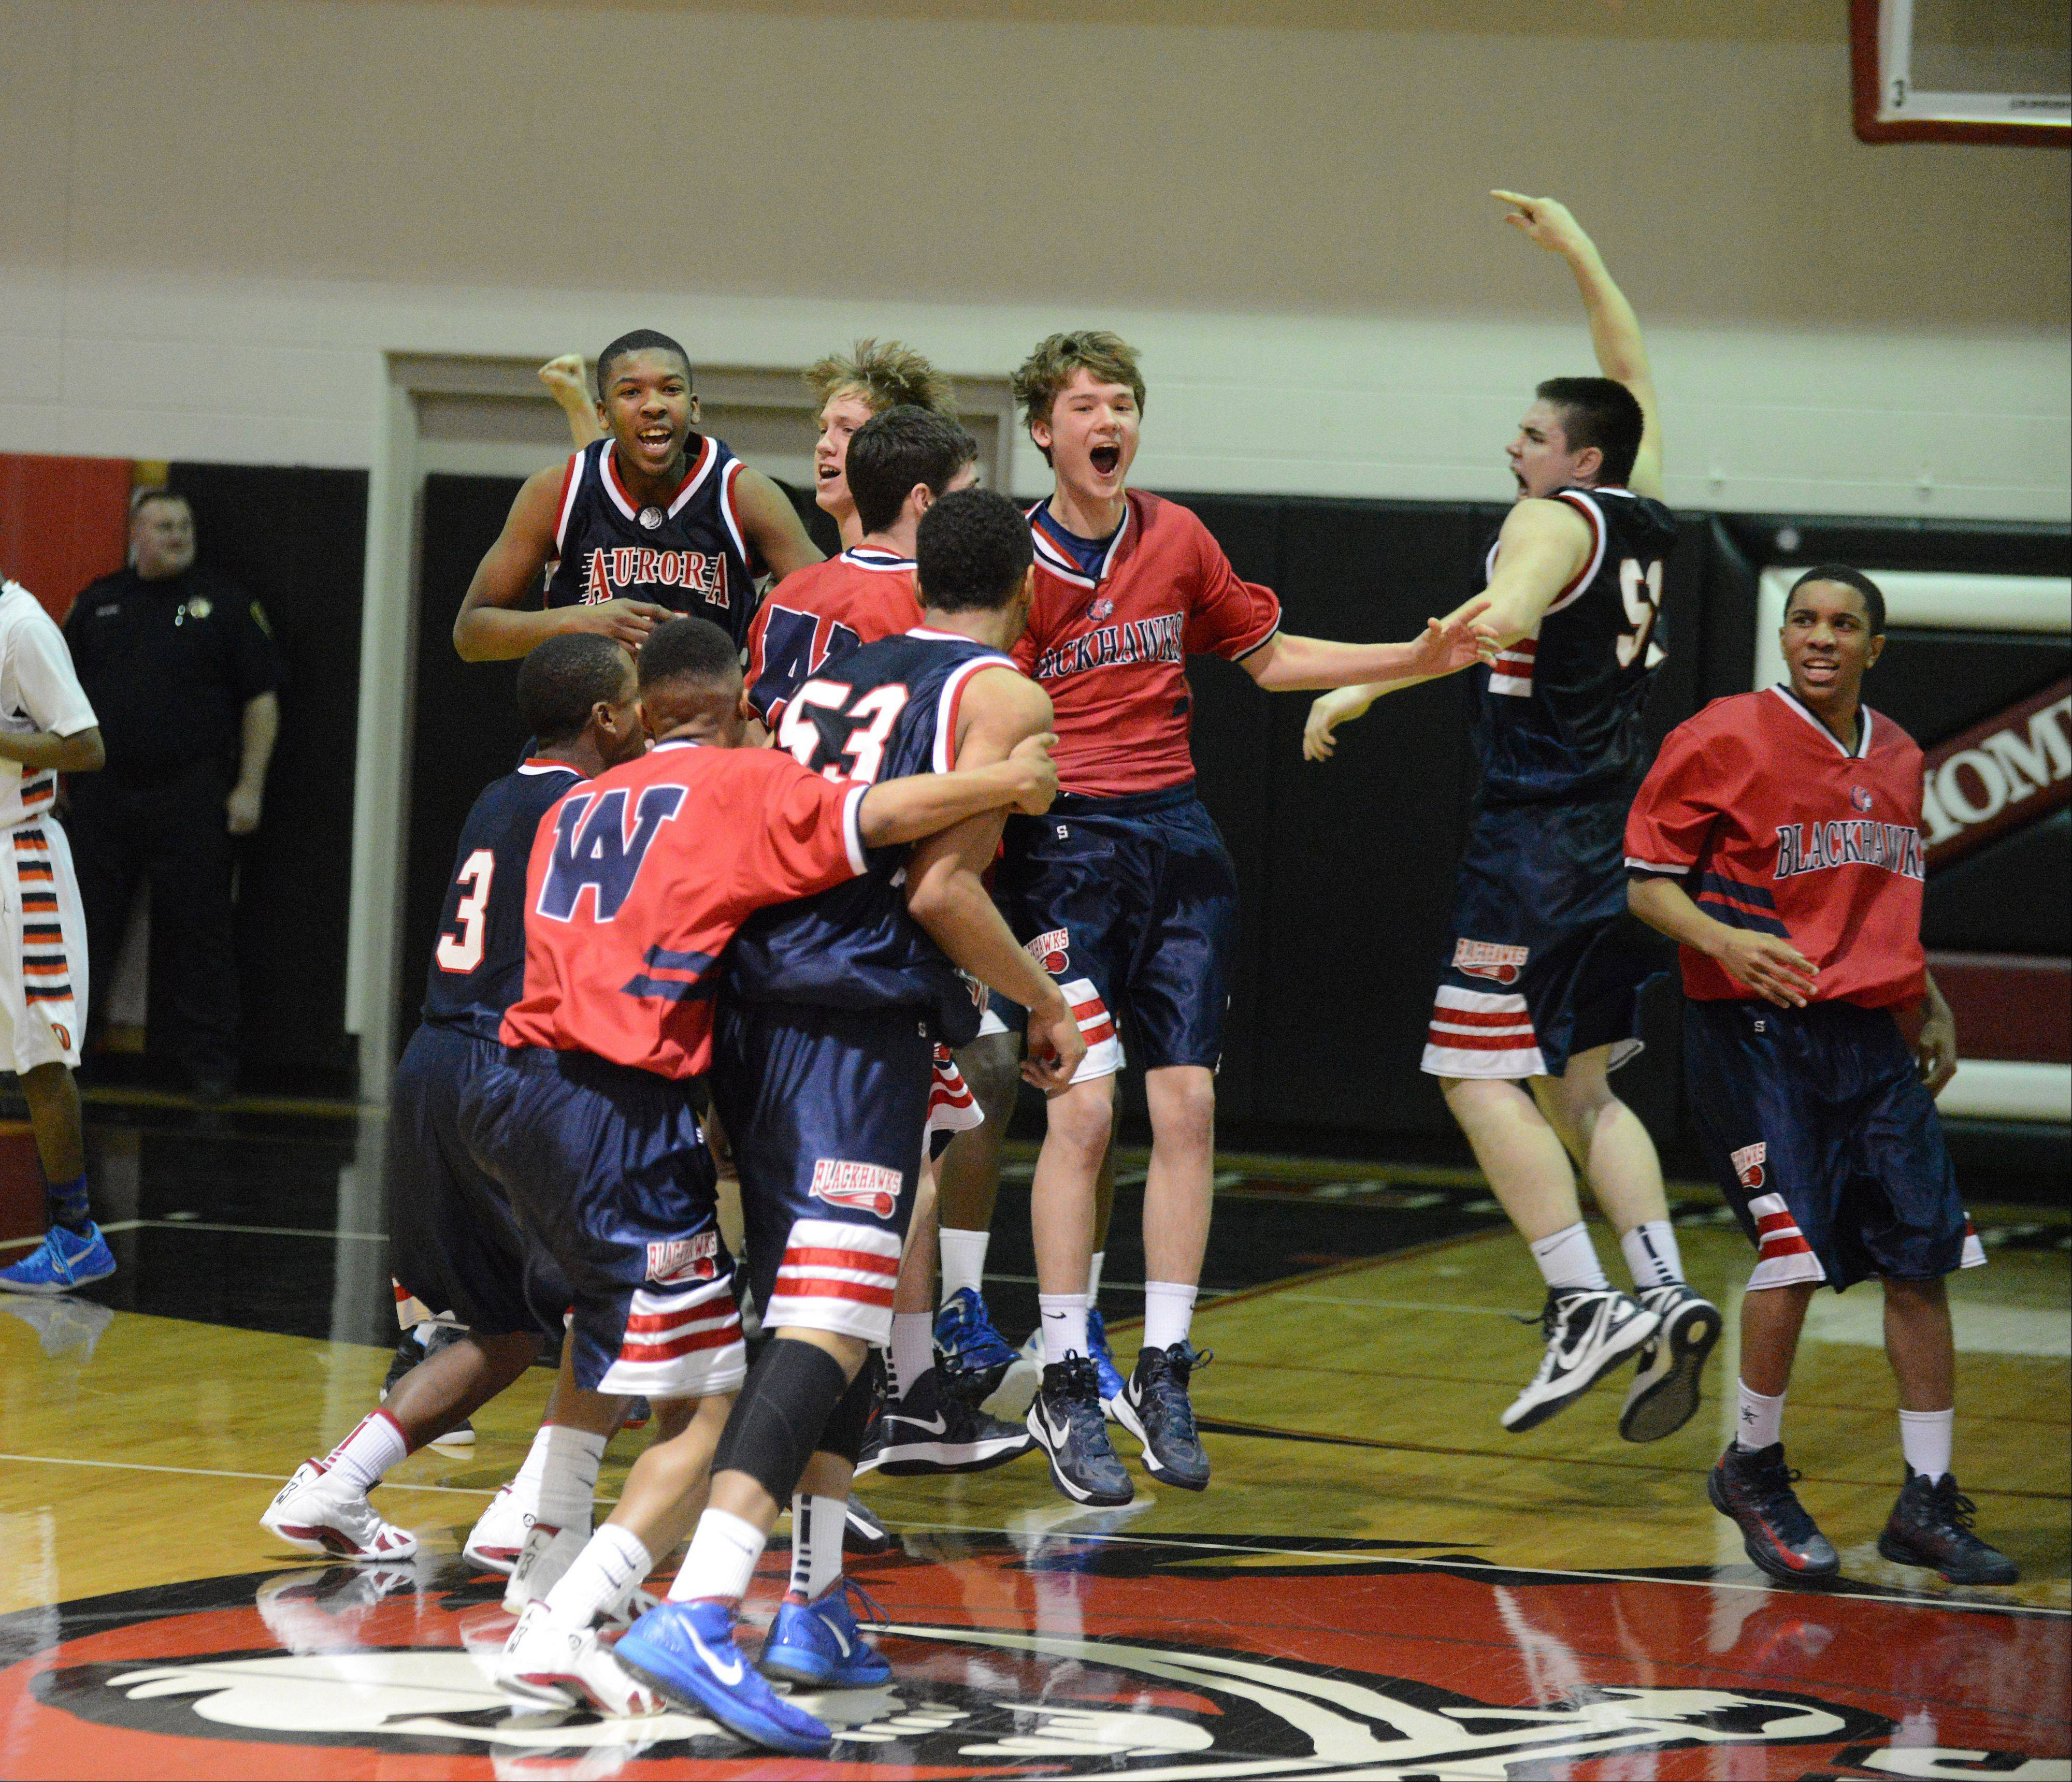 West Aurora reacts to its win over Oswego Wednesday at the Class 4 Bolingbrook sectional.